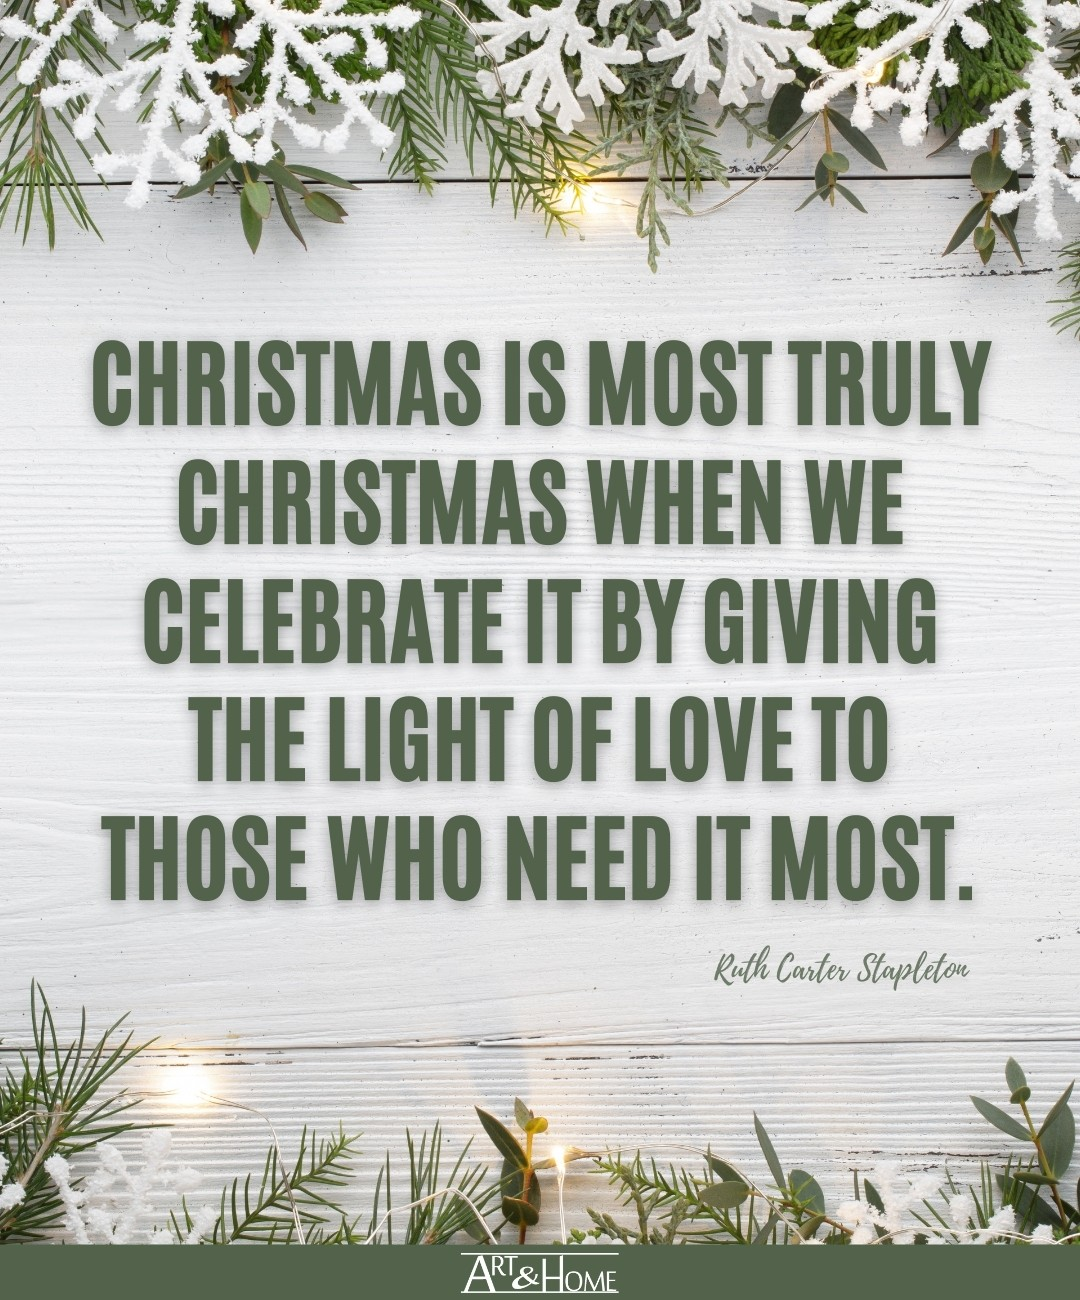 Christmas is most truly Christmas when we celebrate it by giving the light of love to those who need it most. Ruth Carter Stapleton quote.